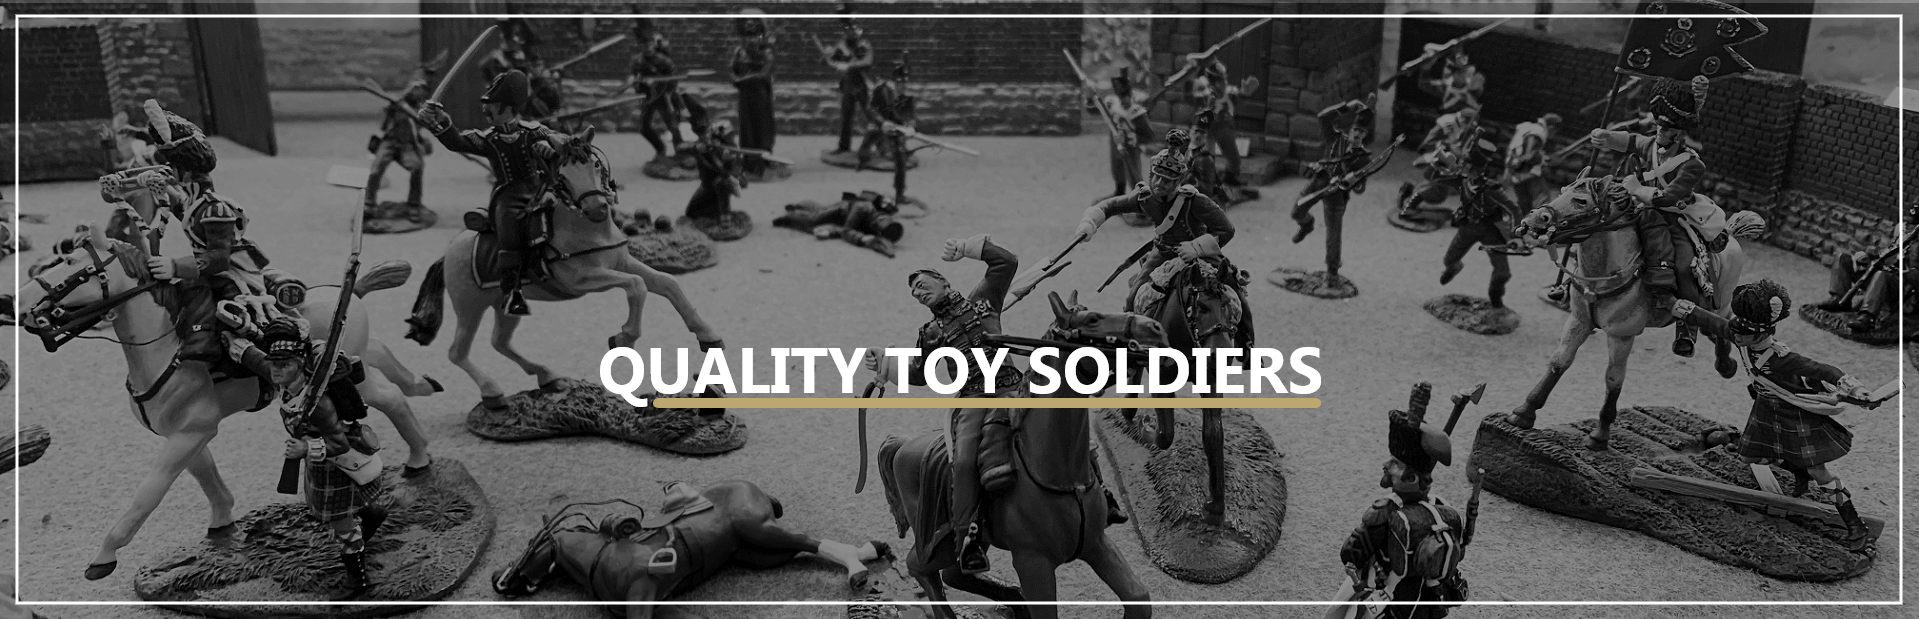 Shop for metal toy soldiers including William Britain and SS Miniatures